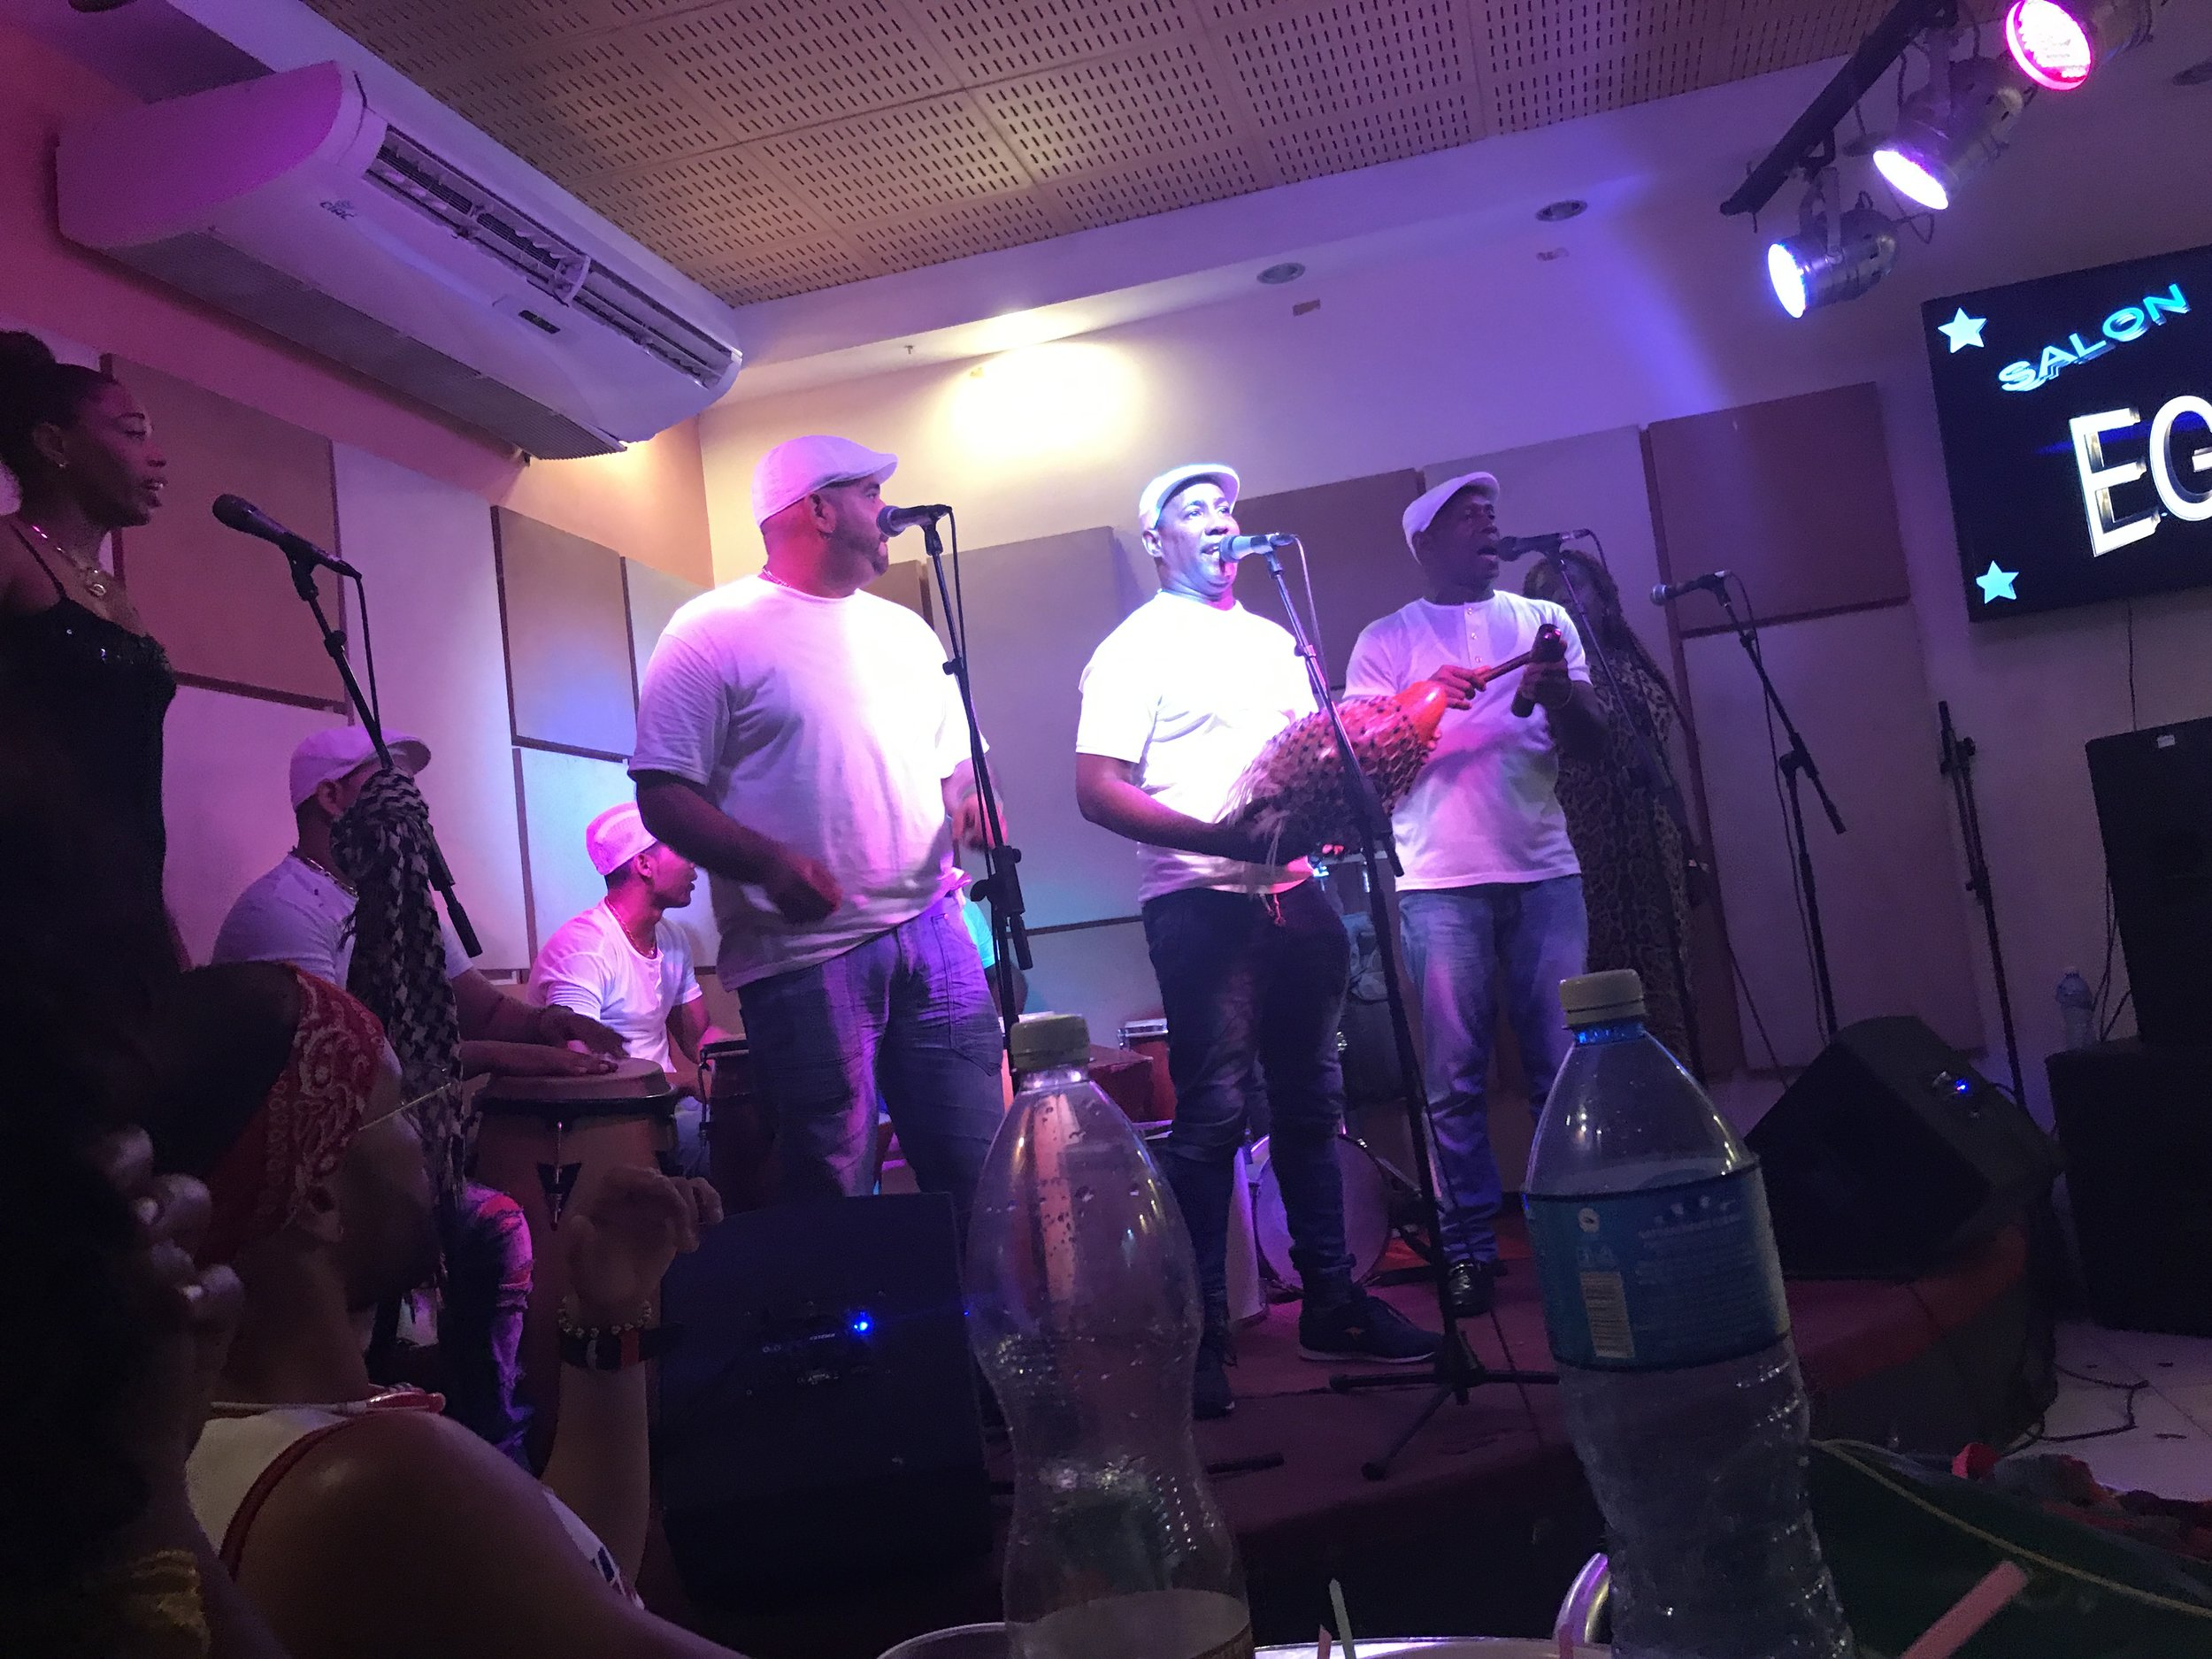 Top 5 Reasons to Visit Cuba - 5. Cool cars4. Spanish architecture3. Afro-Cuban culture2. Rumba and salsa1. Revolutionary historyImage: A rumba live performance at a club in Old Havana